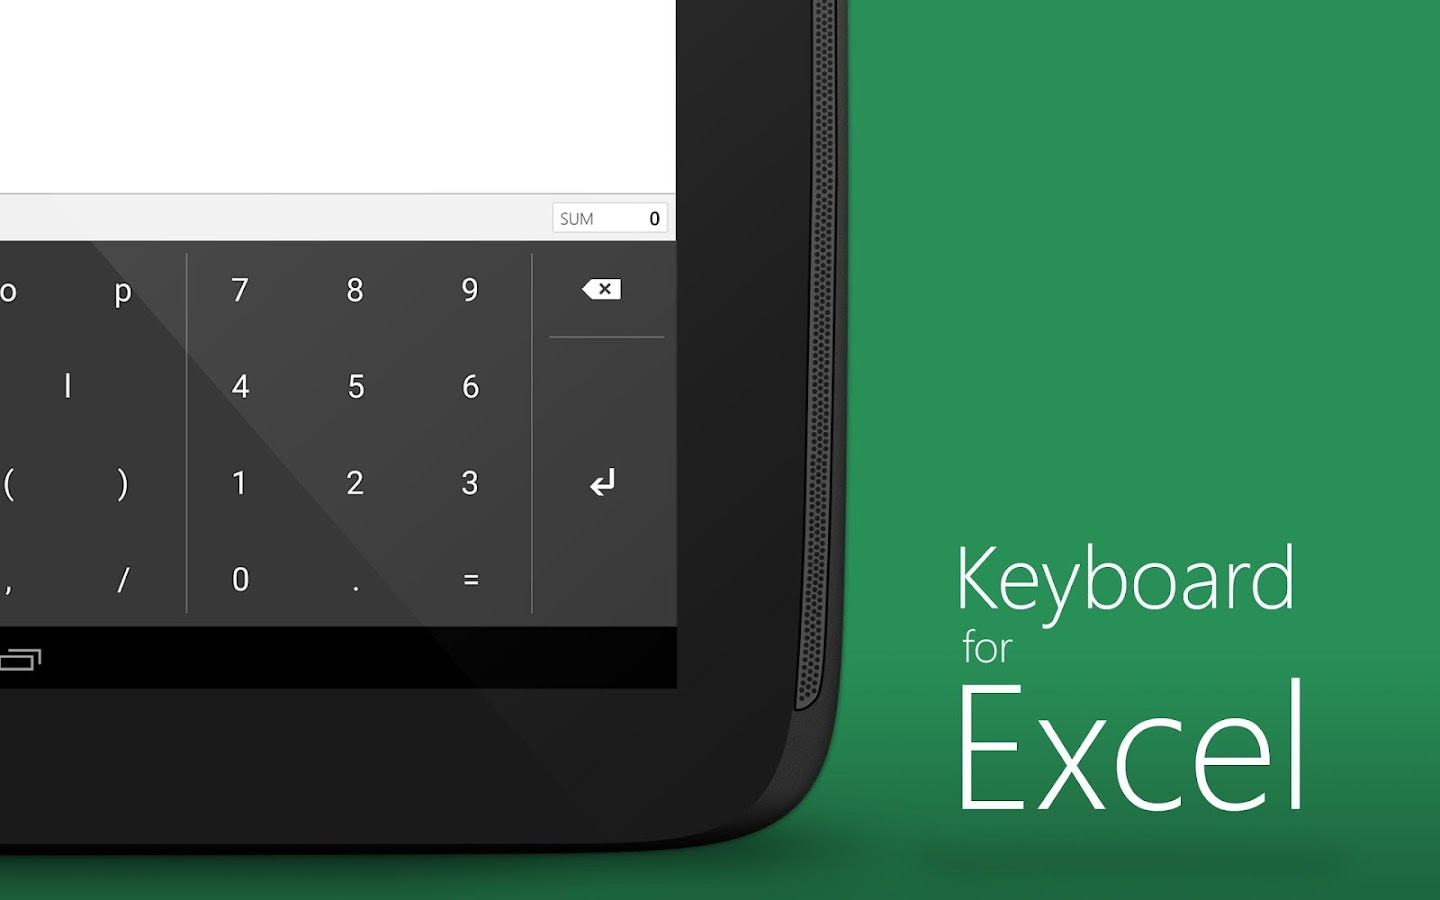 Ediblewildsus  Scenic Keyboard For Excel  Android Apps On Google Play With Handsome Keyboard For Excel Screenshot With Comely Pivot Table On Excel Also Annualized Return Formula Excel In Addition How To Create An Array In Excel And Excel Button To Run Macro As Well As Excel Weekly Budget Template Additionally Convert Xml File To Excel From Playgooglecom With Ediblewildsus  Handsome Keyboard For Excel  Android Apps On Google Play With Comely Keyboard For Excel Screenshot And Scenic Pivot Table On Excel Also Annualized Return Formula Excel In Addition How To Create An Array In Excel From Playgooglecom